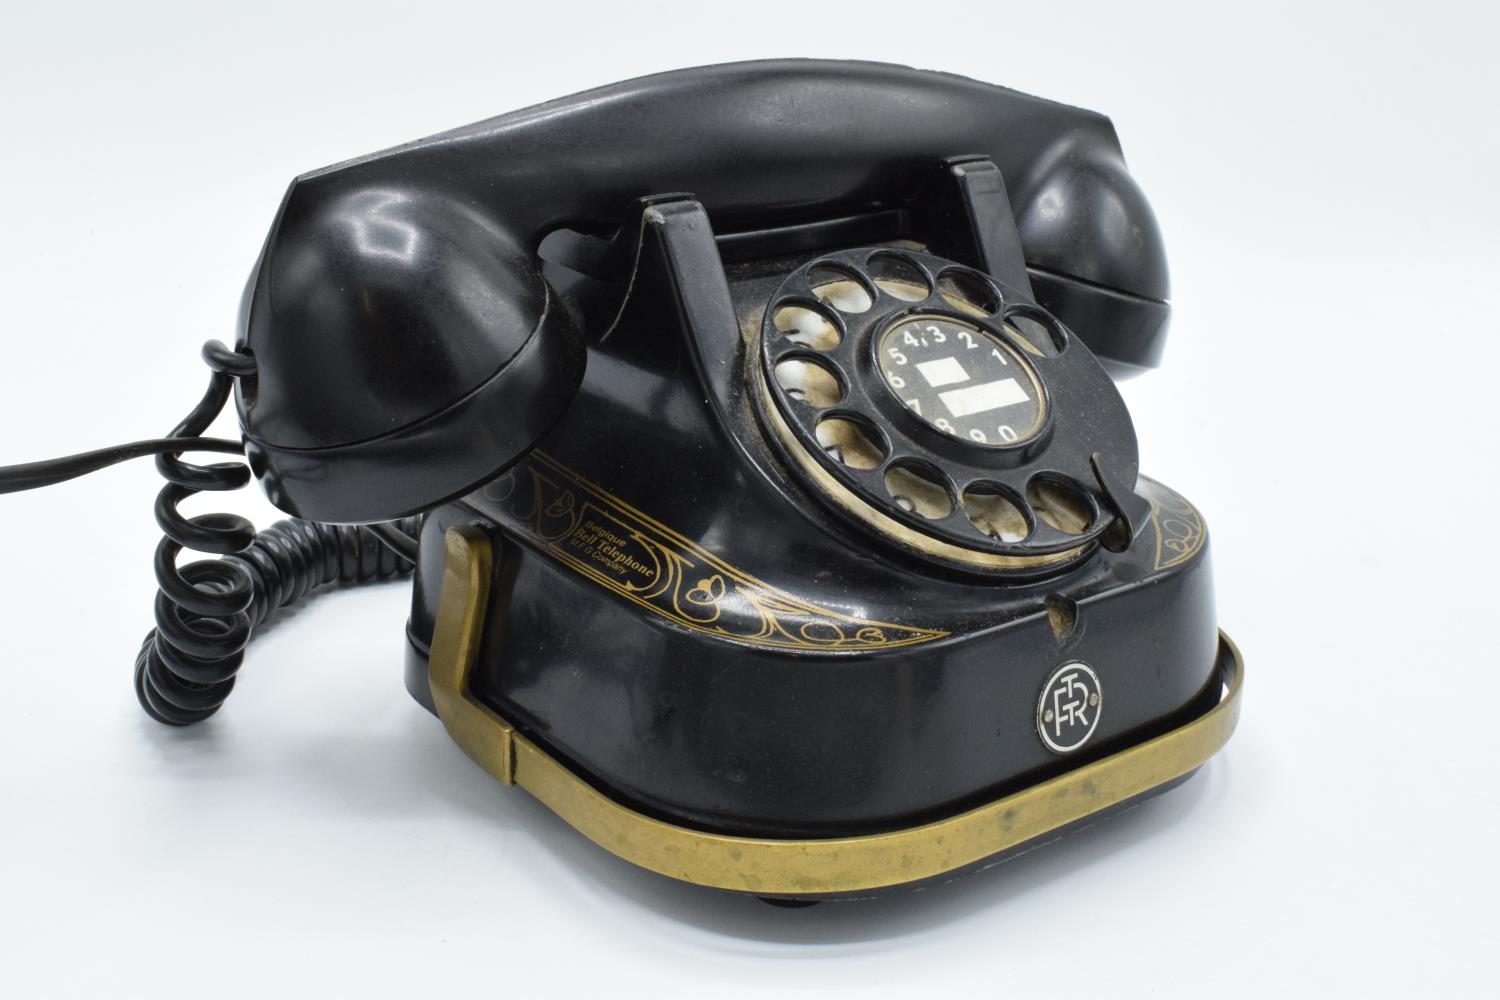 MFG Company Bell Telephone Belgique with Bakelite phone. Displays well. Untested. 16cm tall. - Image 2 of 7